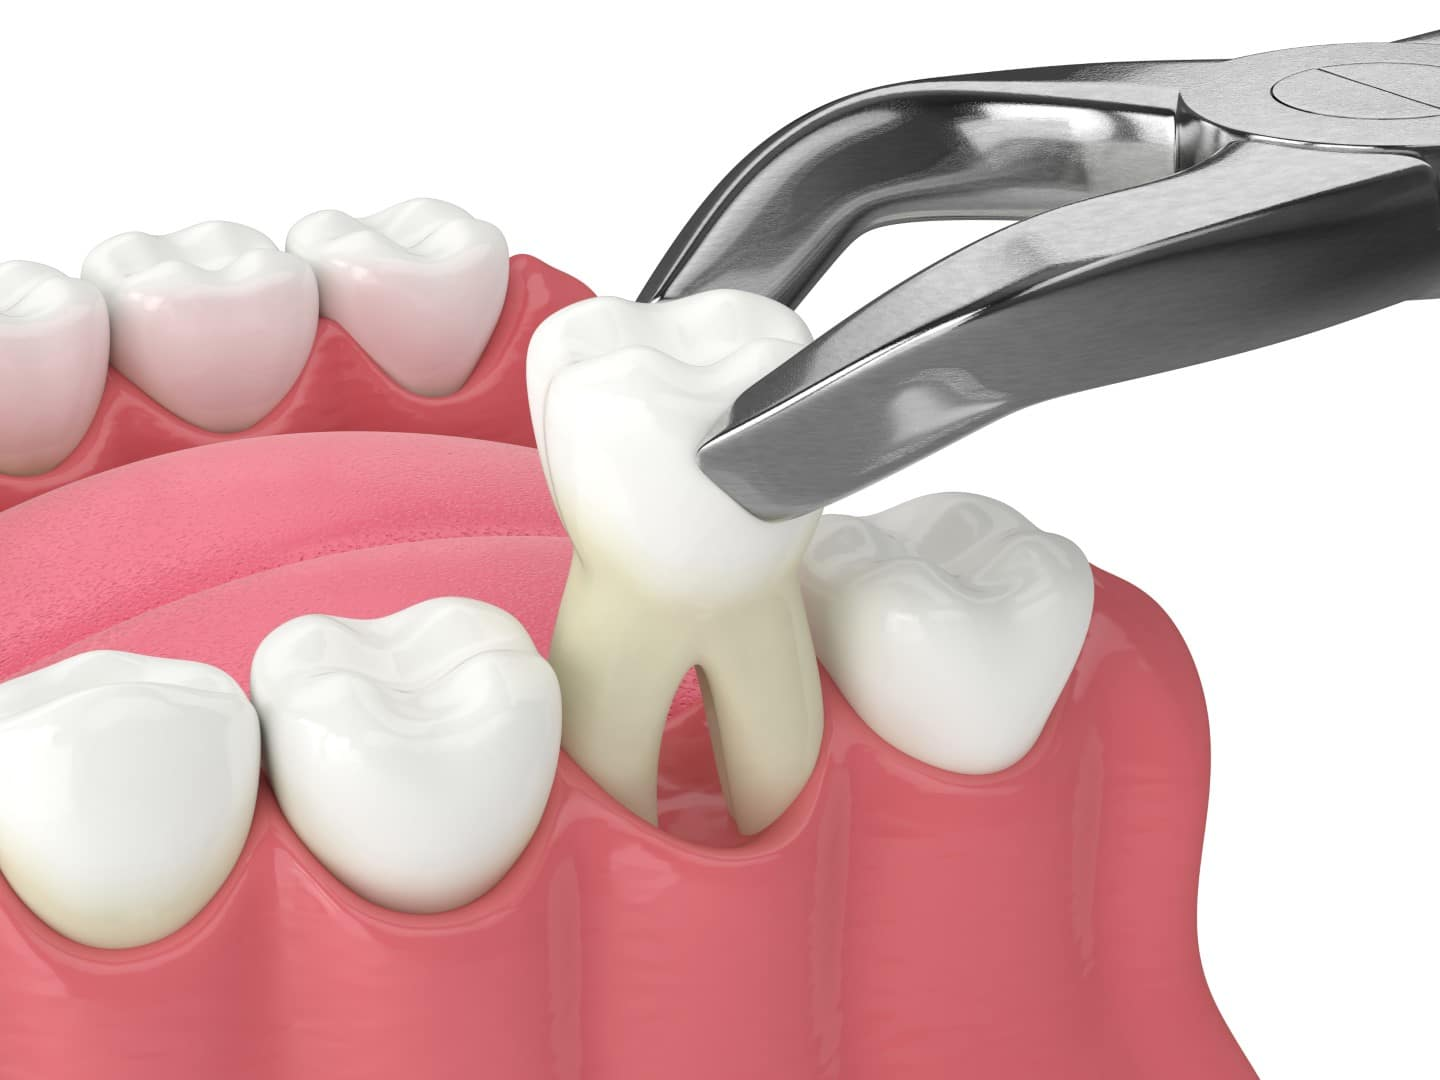 Dental Extractions - Dental Care Services - Wodonga Family Dental Clinic